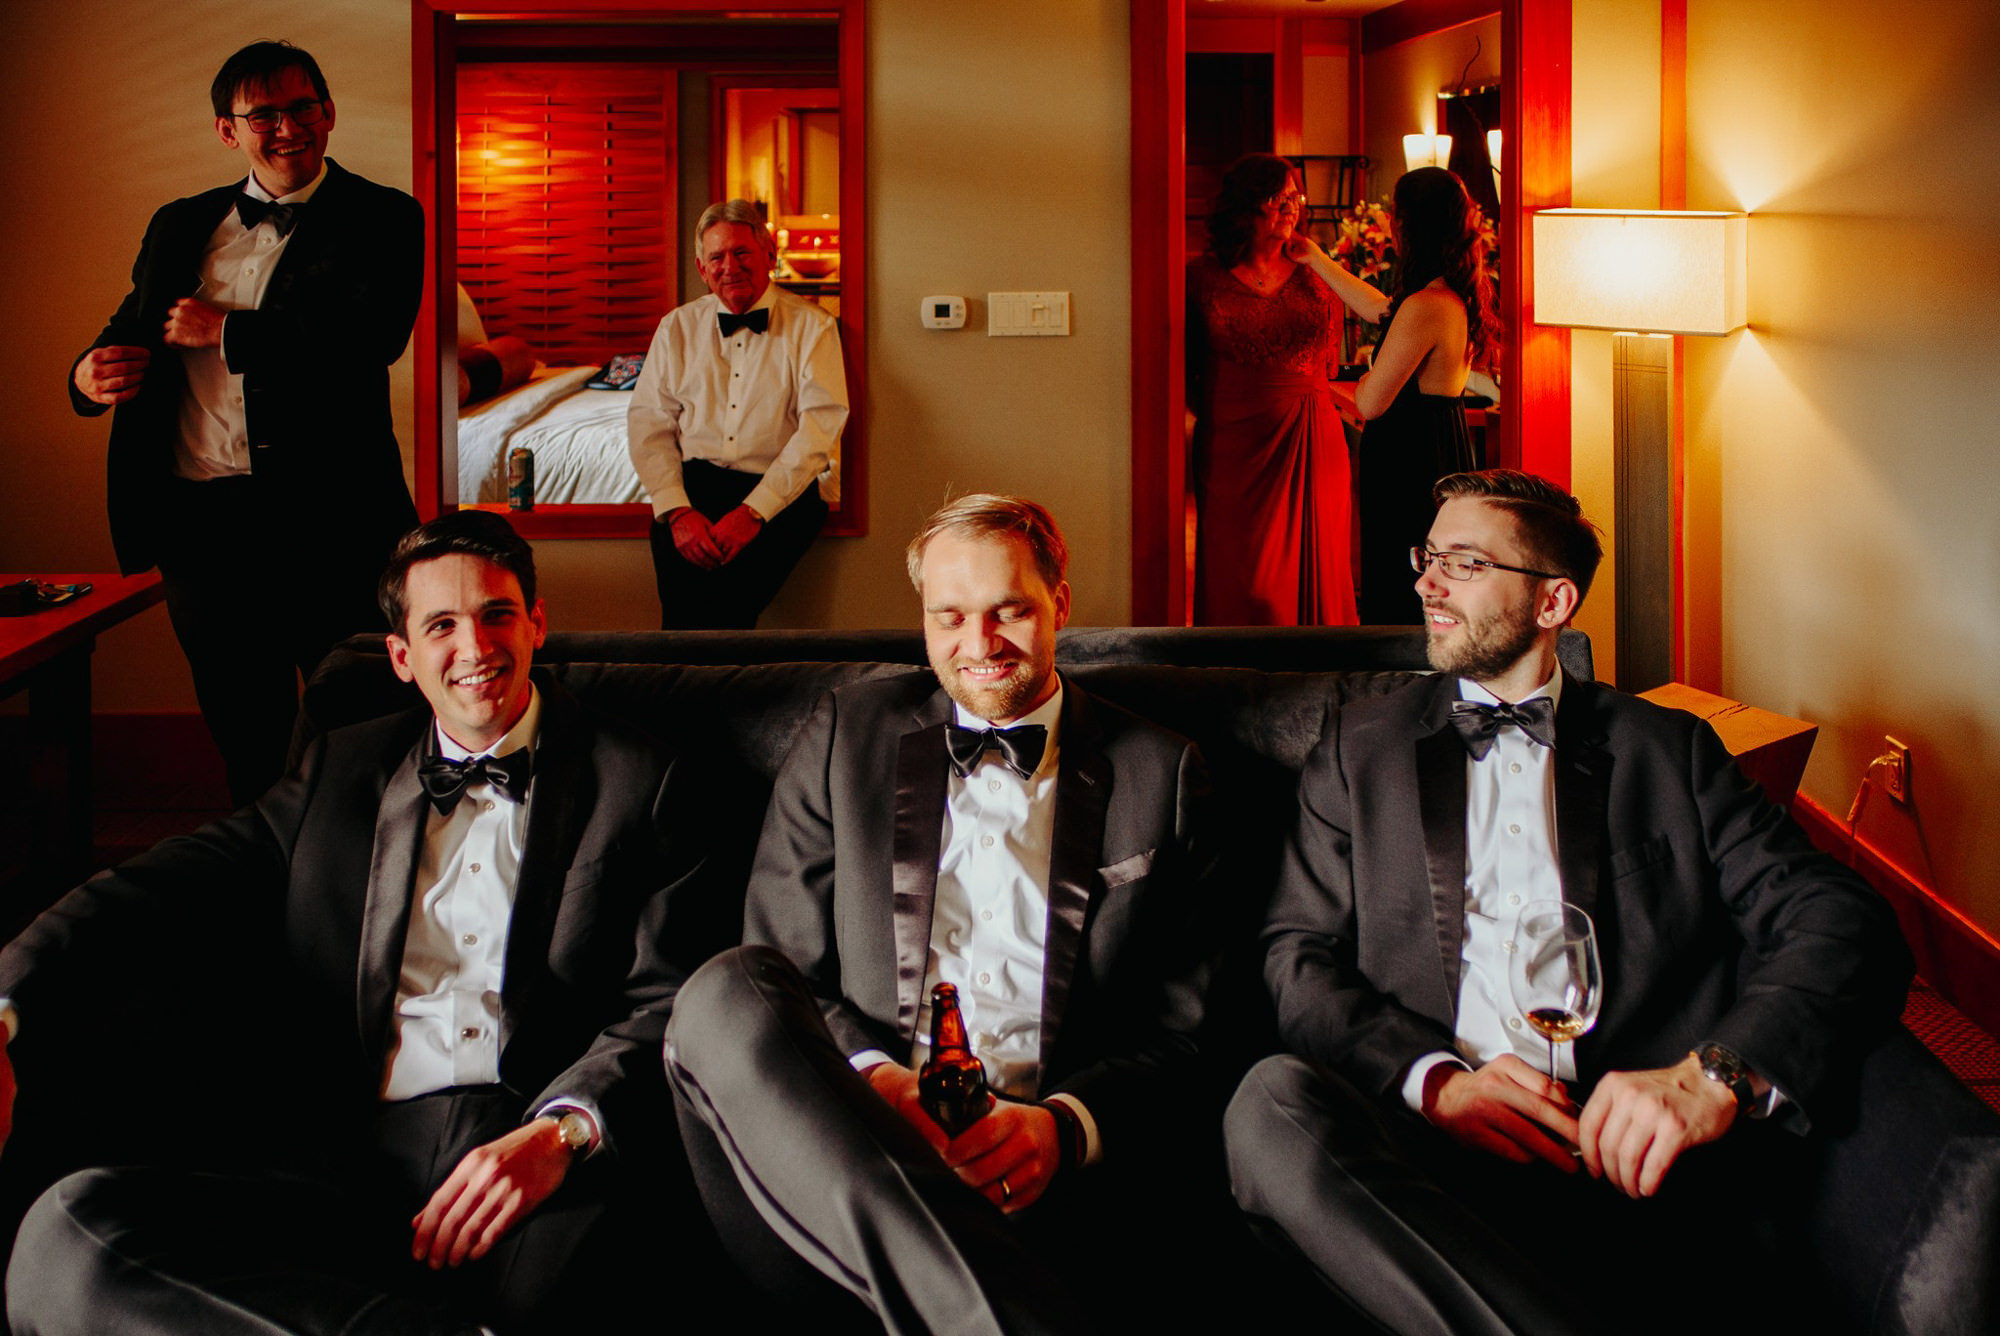 Layered moment of groom, groomsmen and family hanging out in room, photo by Benj Haisch